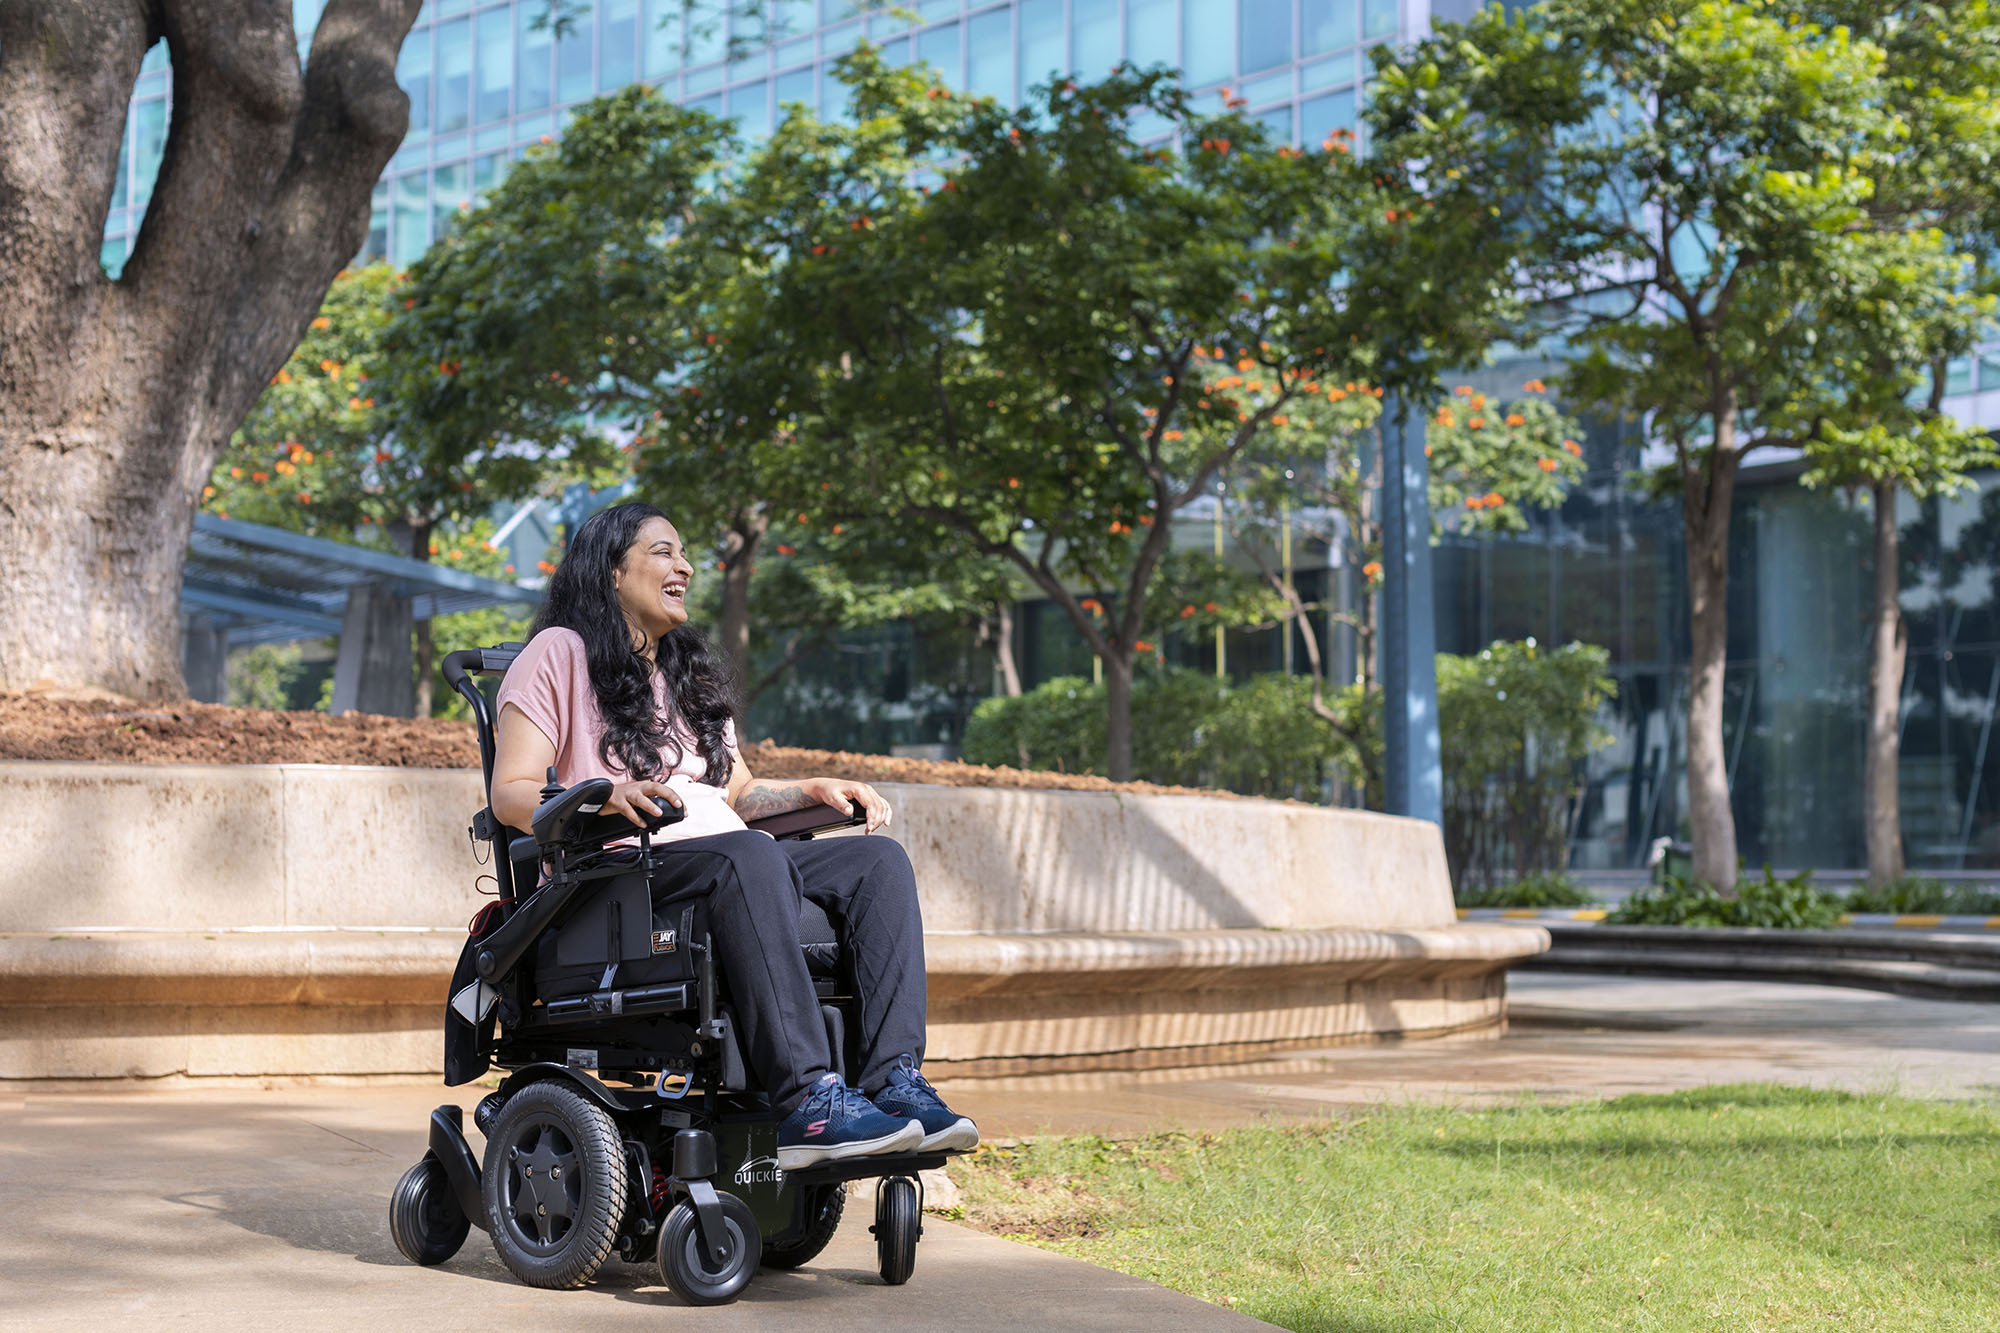 'Raising the bar' on accessibility and inclusion at Amazon - Image 4